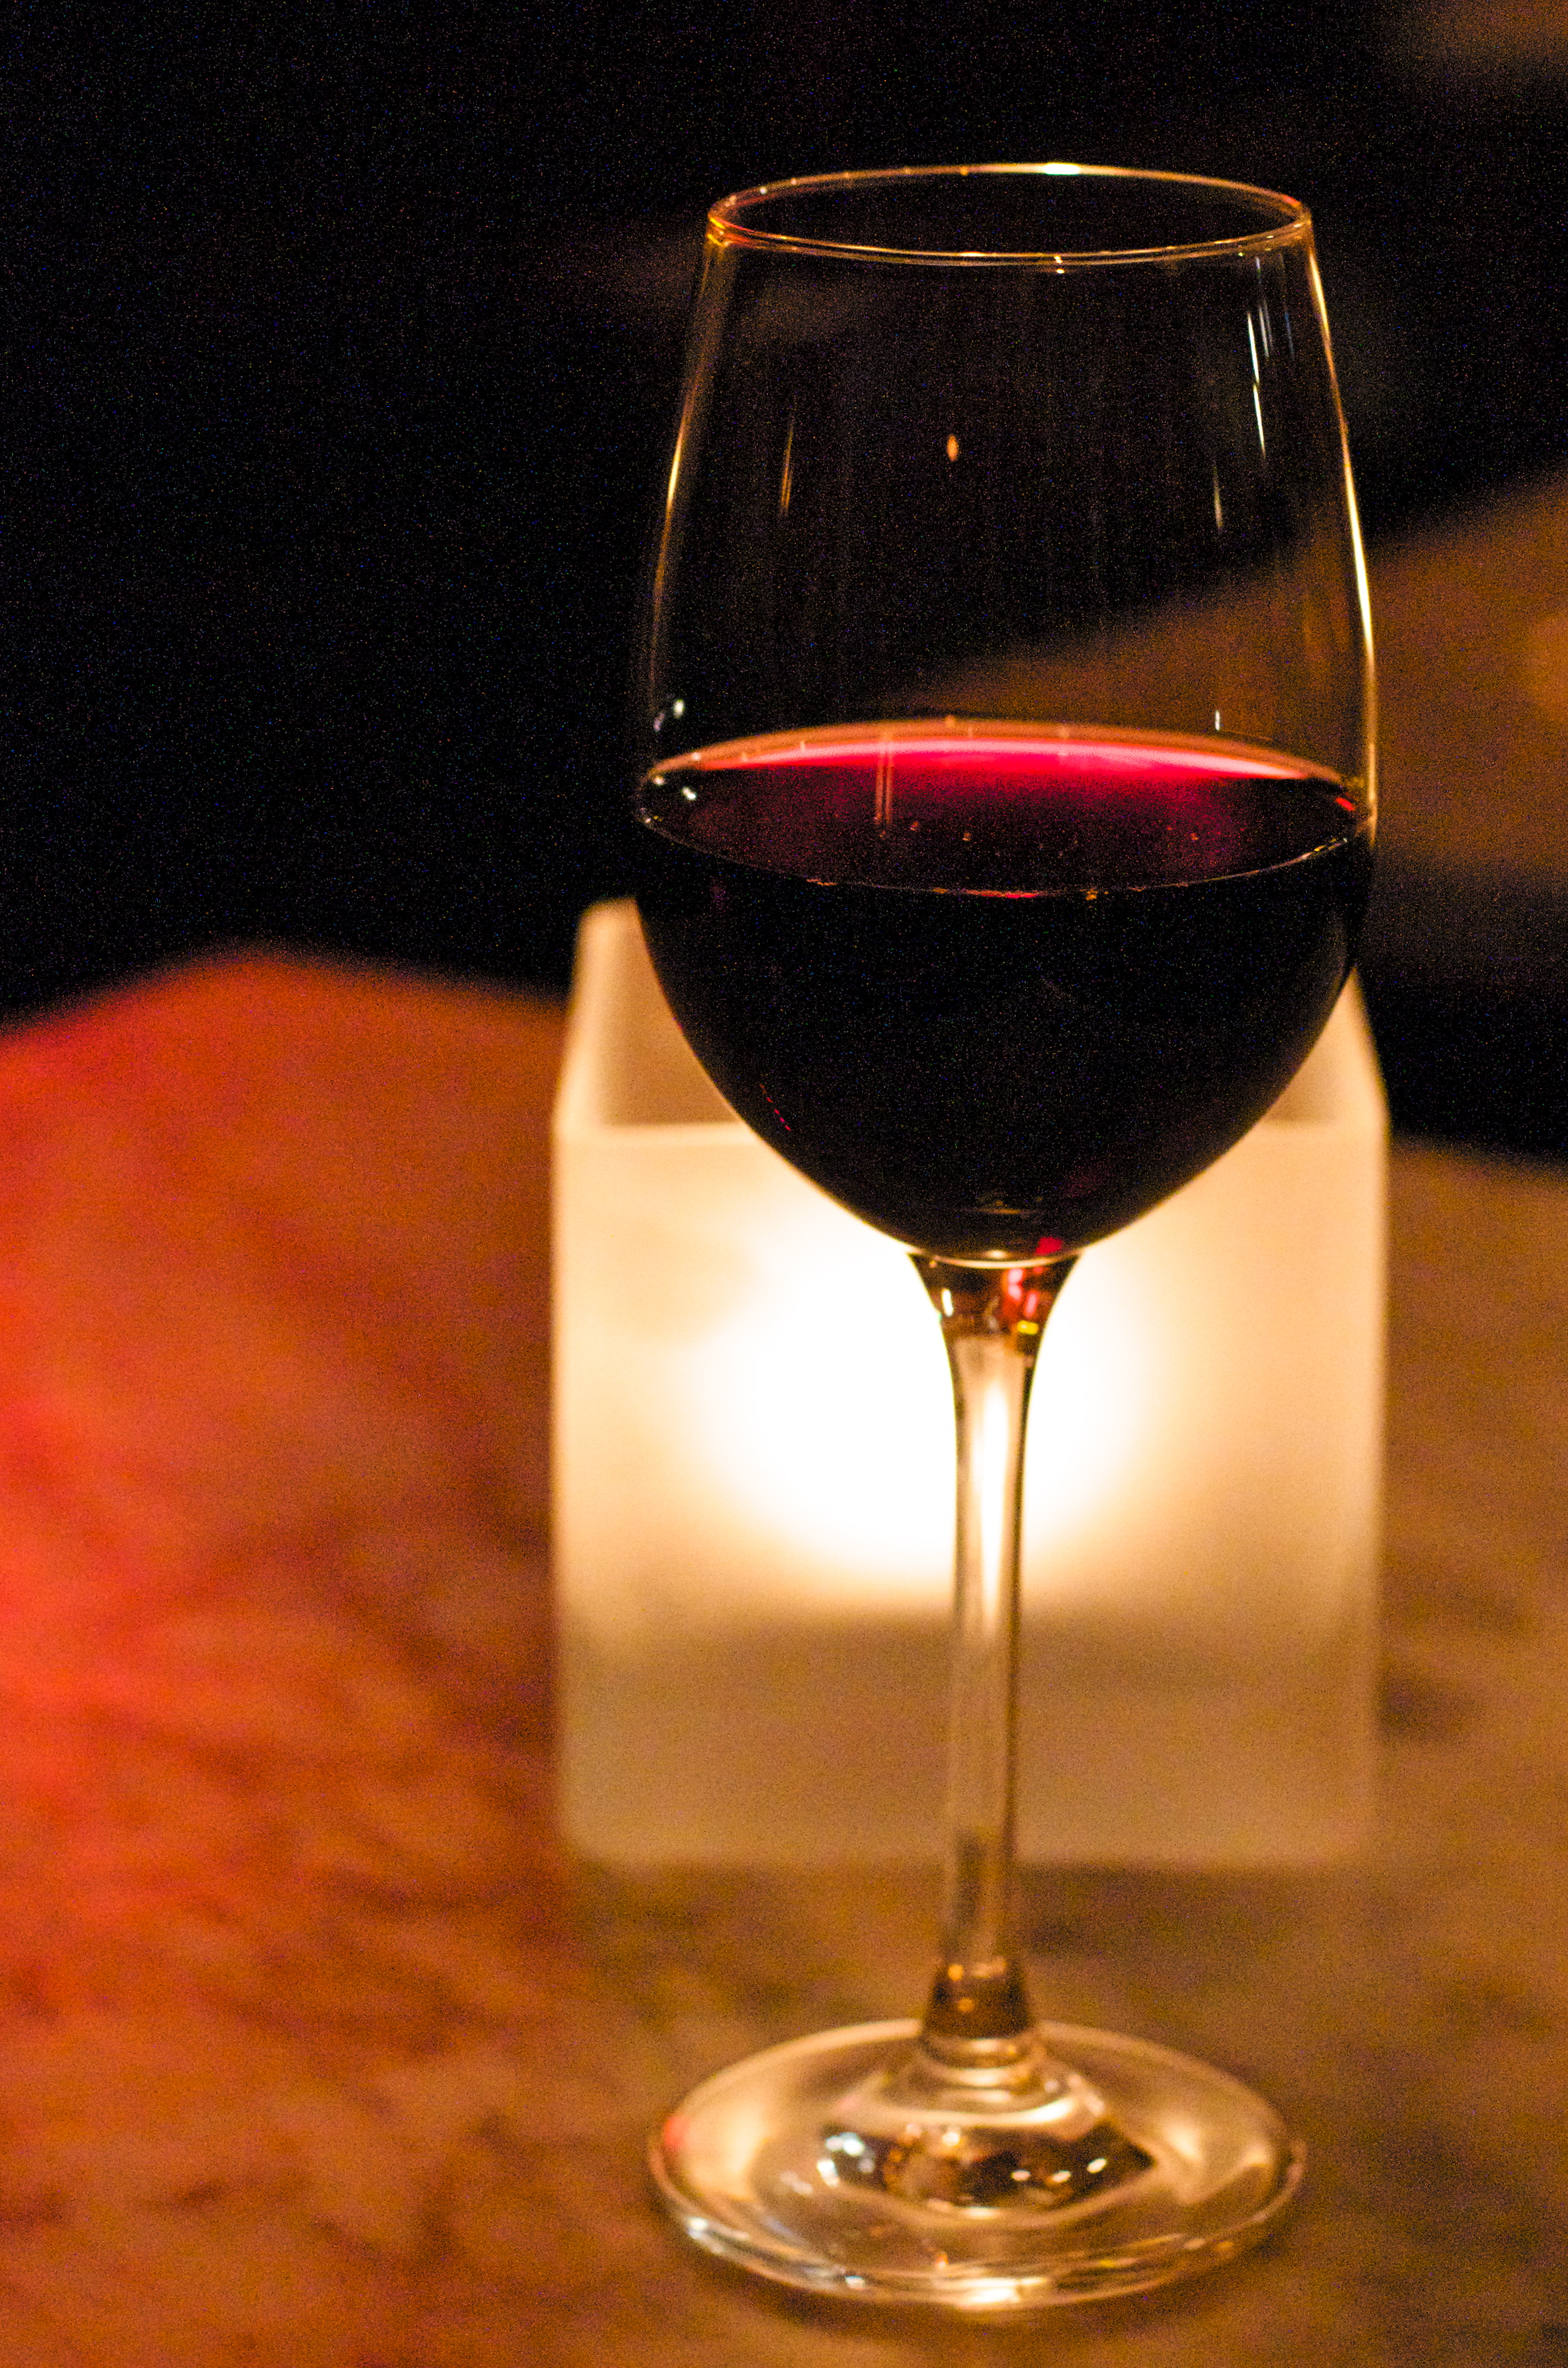 Is Malbec Wine Served Chilled Or Room Temperature